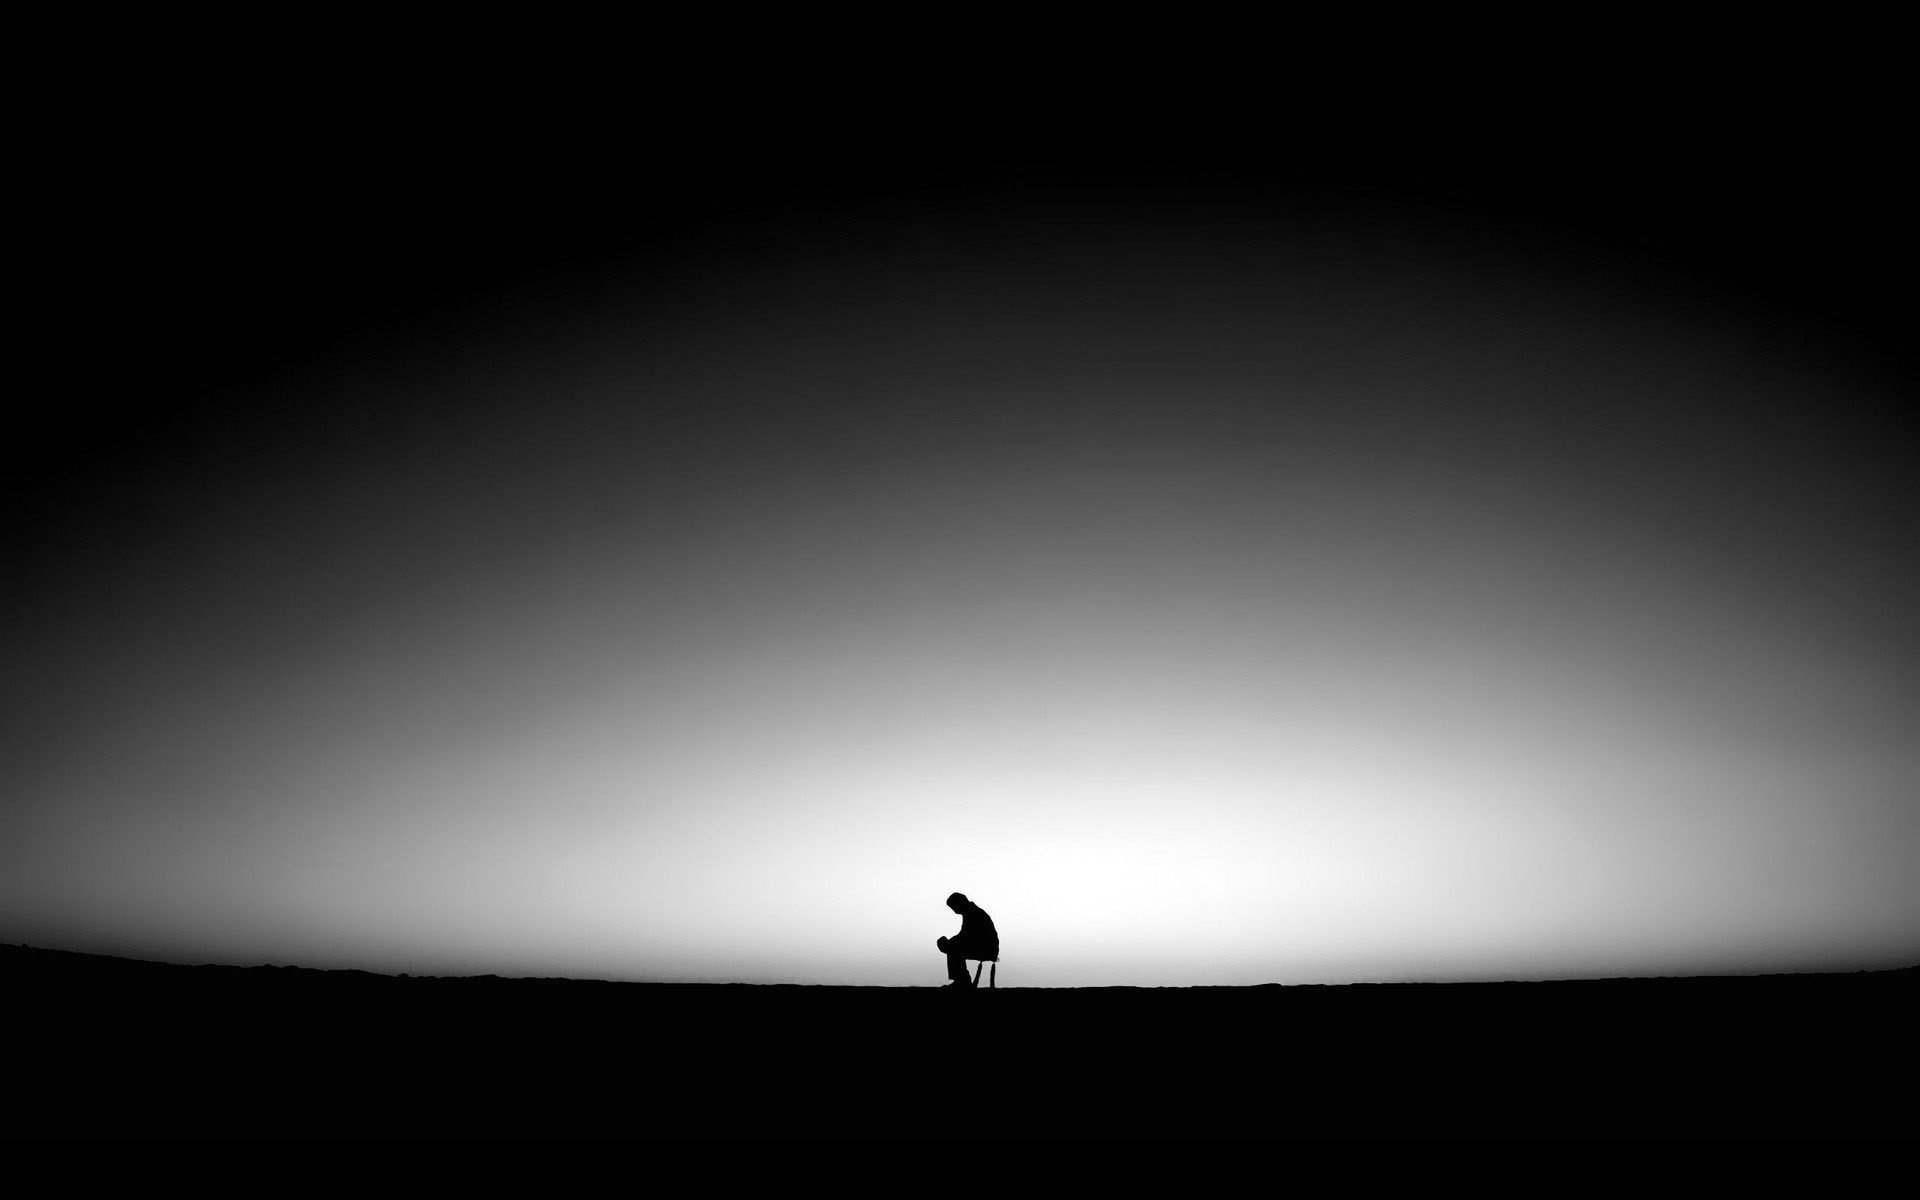 Alone Boy In Rain Hd Wallpaper Posted By Sarah Cunningham